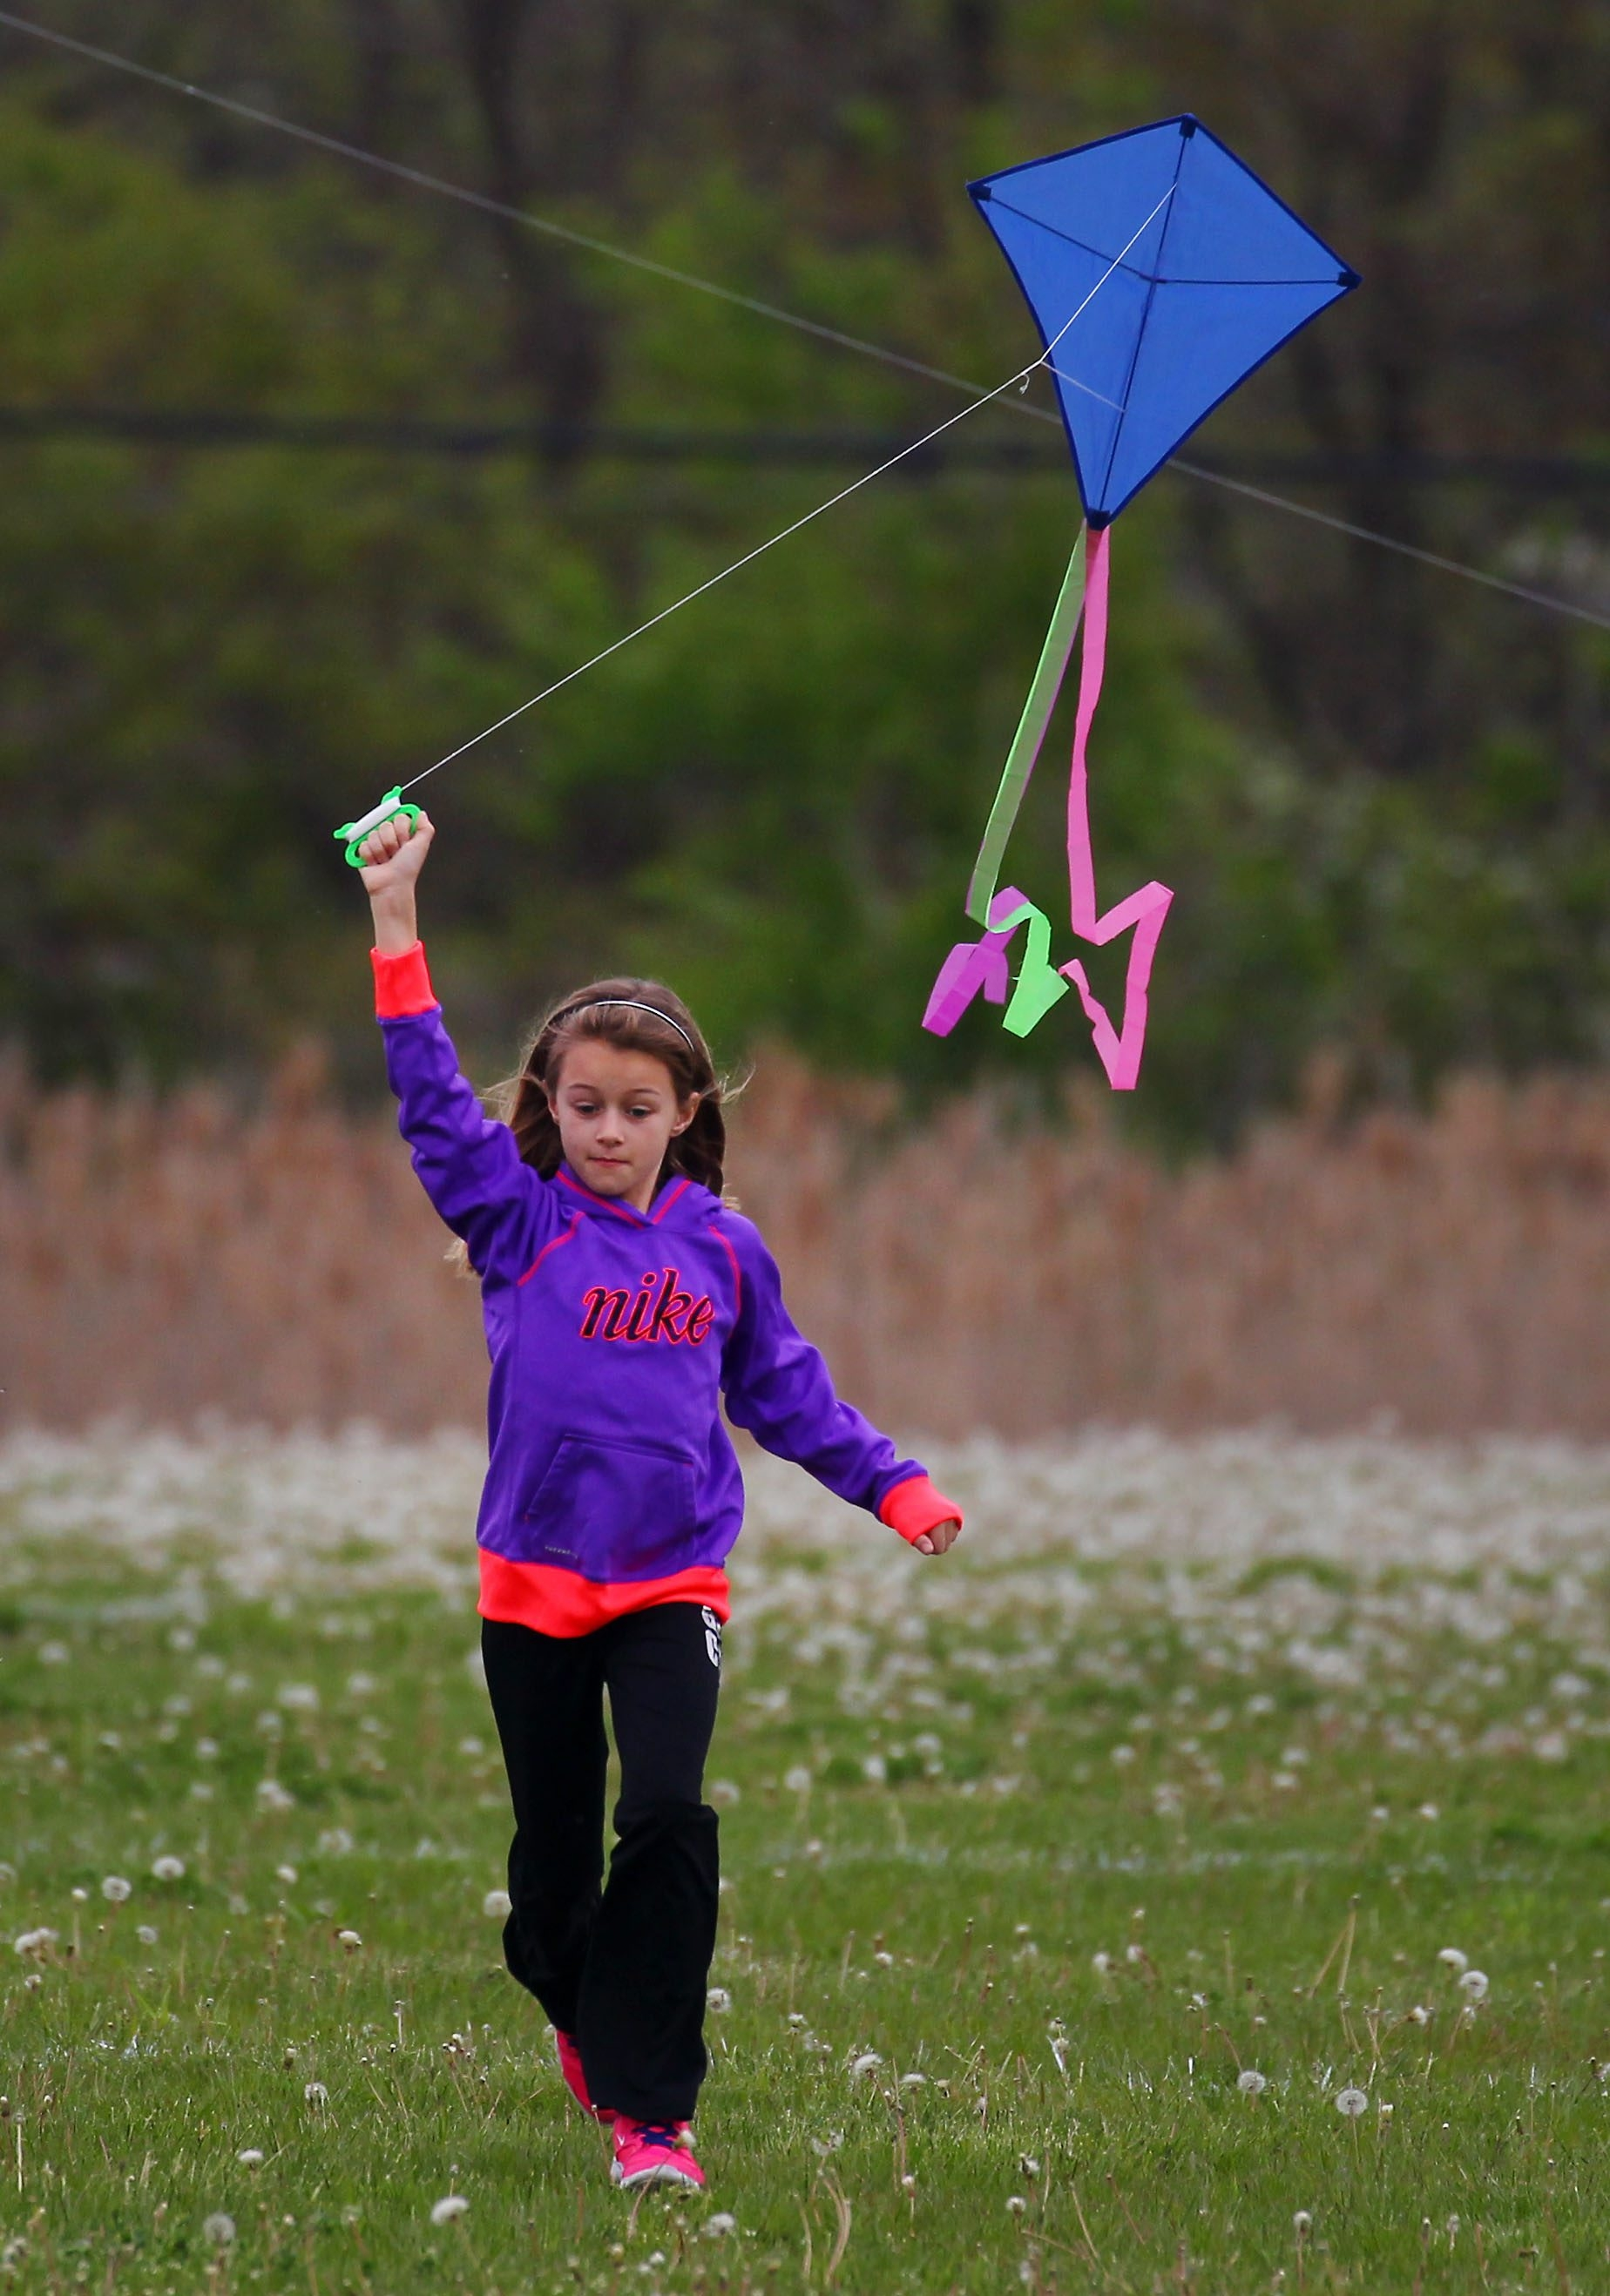 Rielly Brick tries to launch her kite Saturday at a fundraiser for homeless veterans in Gratwick-Riverside Park, North Tonawanda.